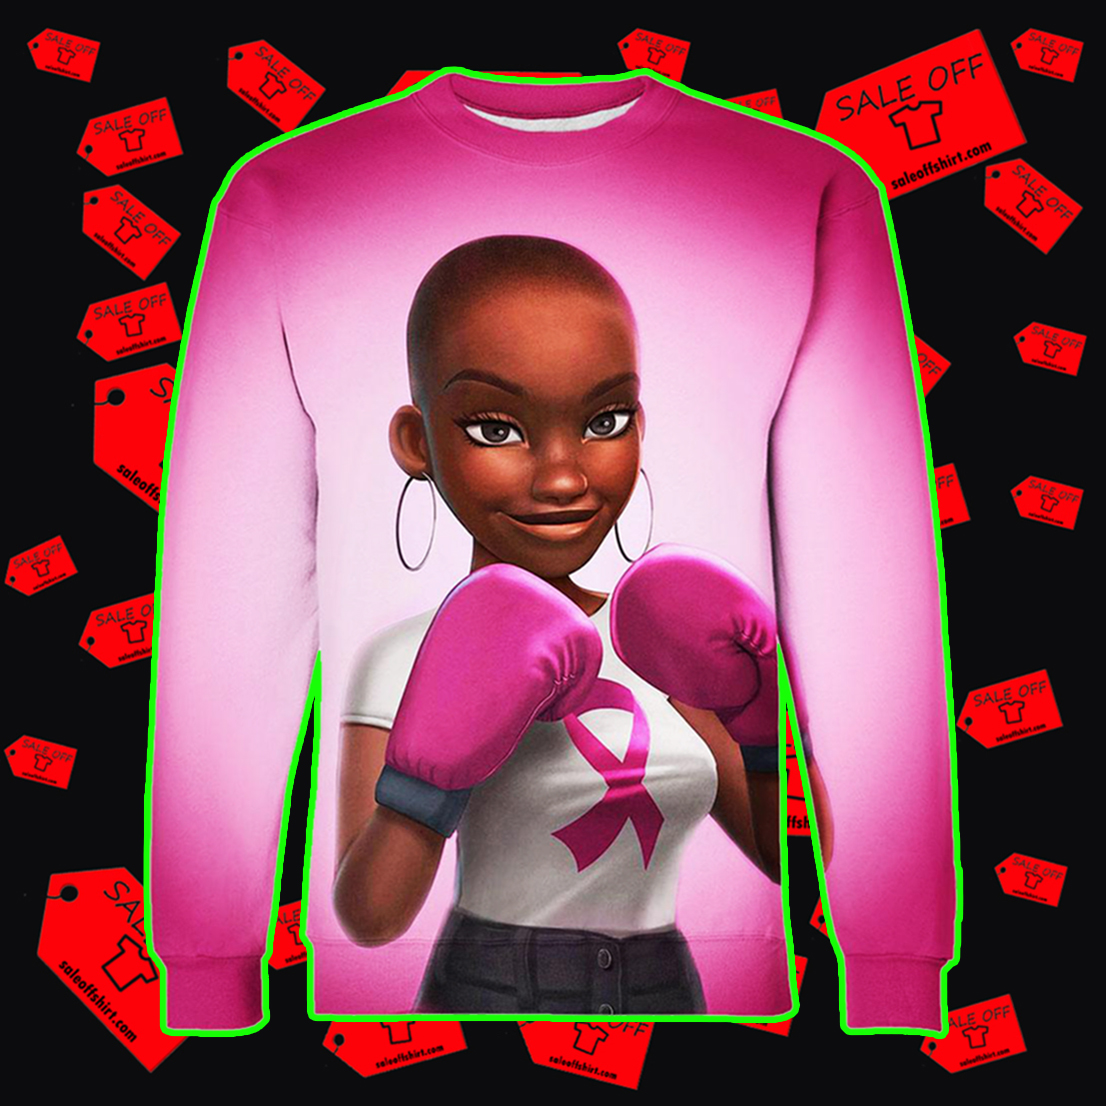 Black Girl Pink Warrior October Breast Cancer Awareness Hoodie 3D, T-shirt 3D, Sweatshirt 3D - Sweatshirt 3D